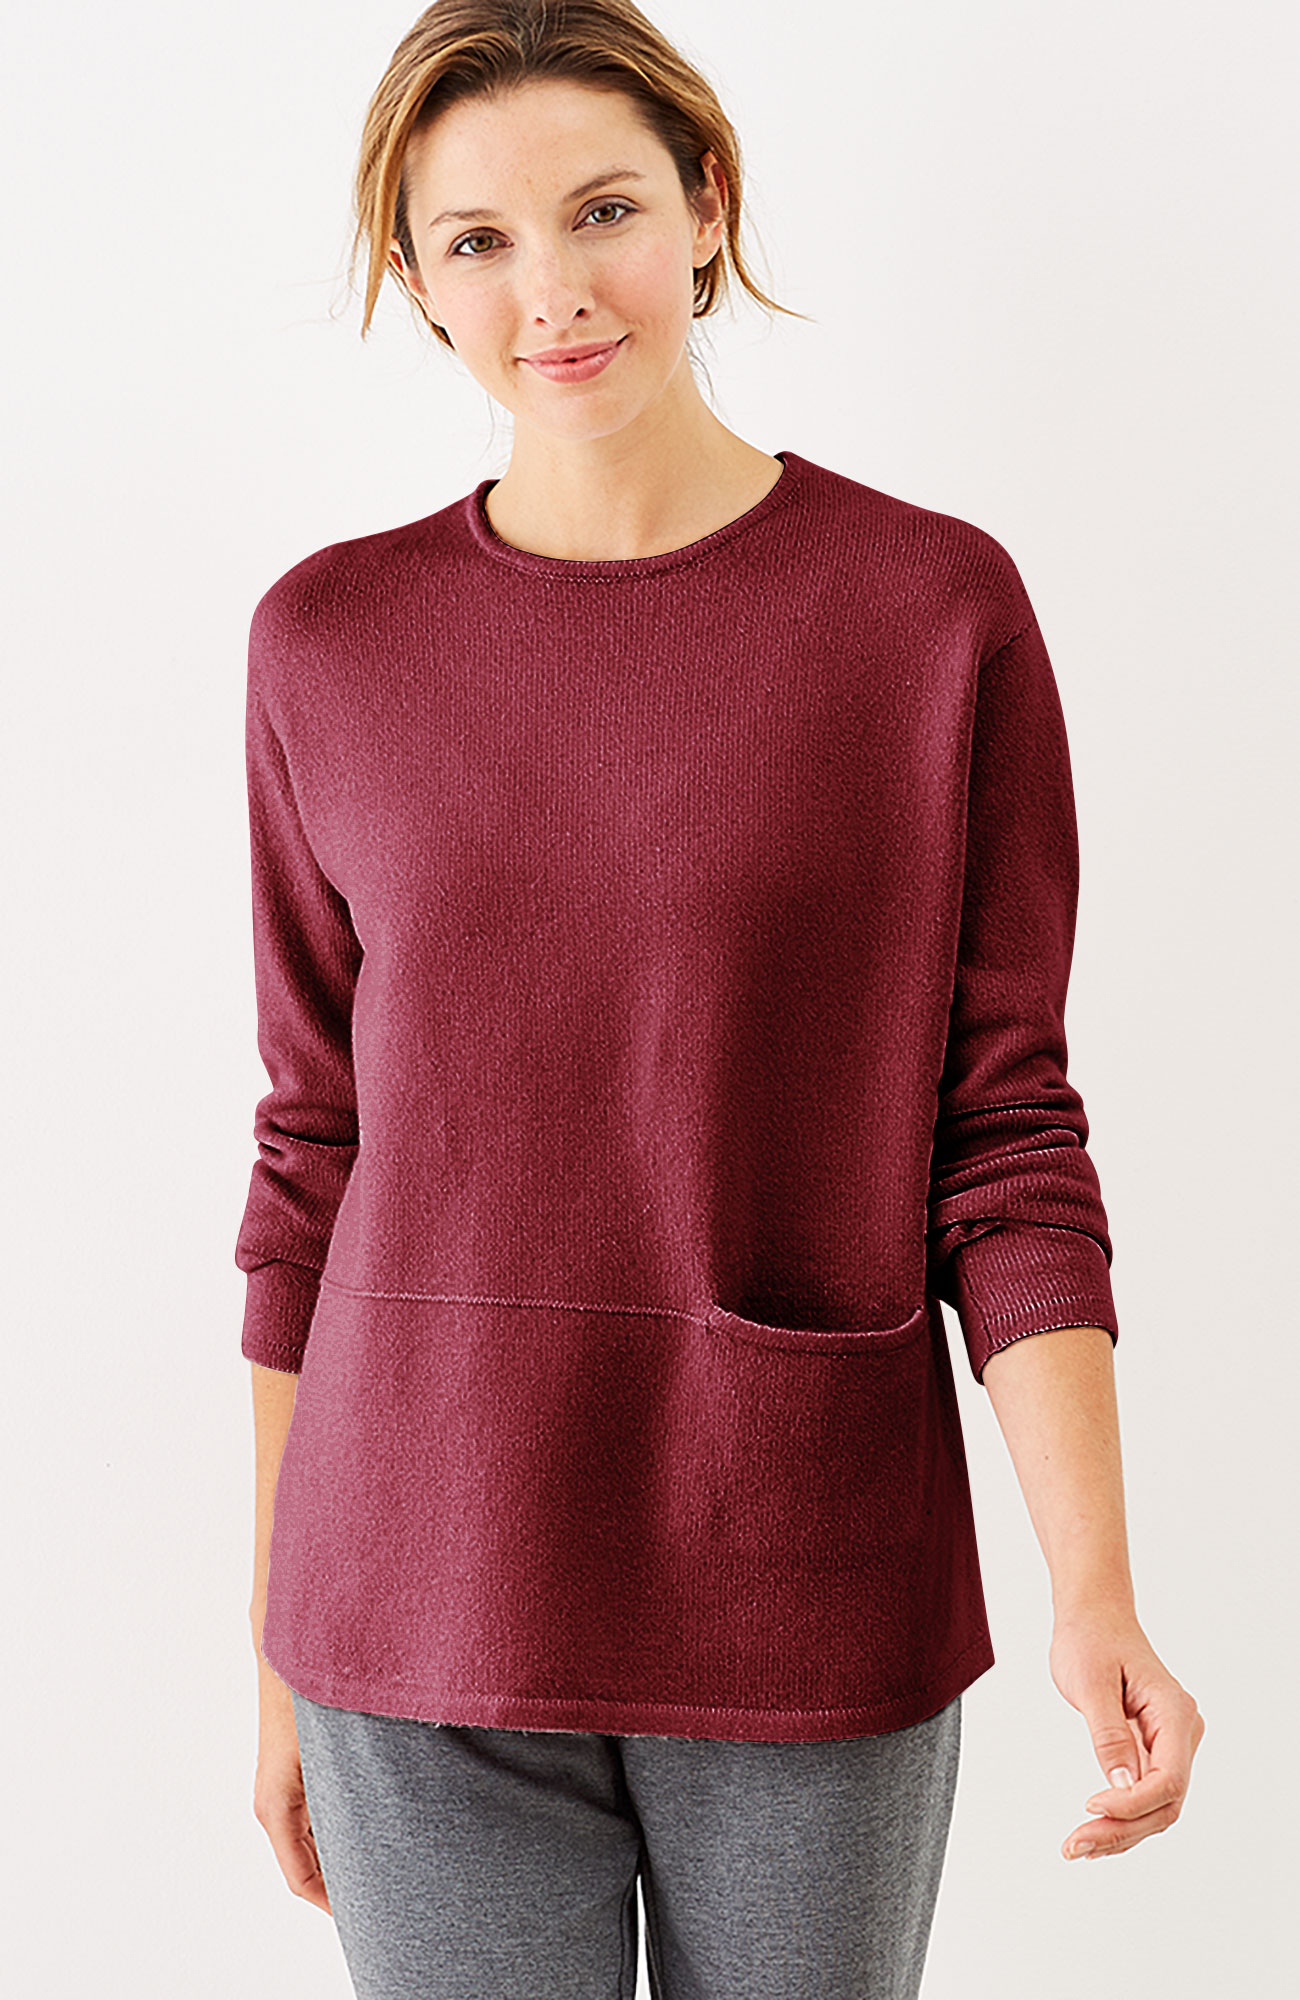 Pure Jill seamed crew-neck pullover